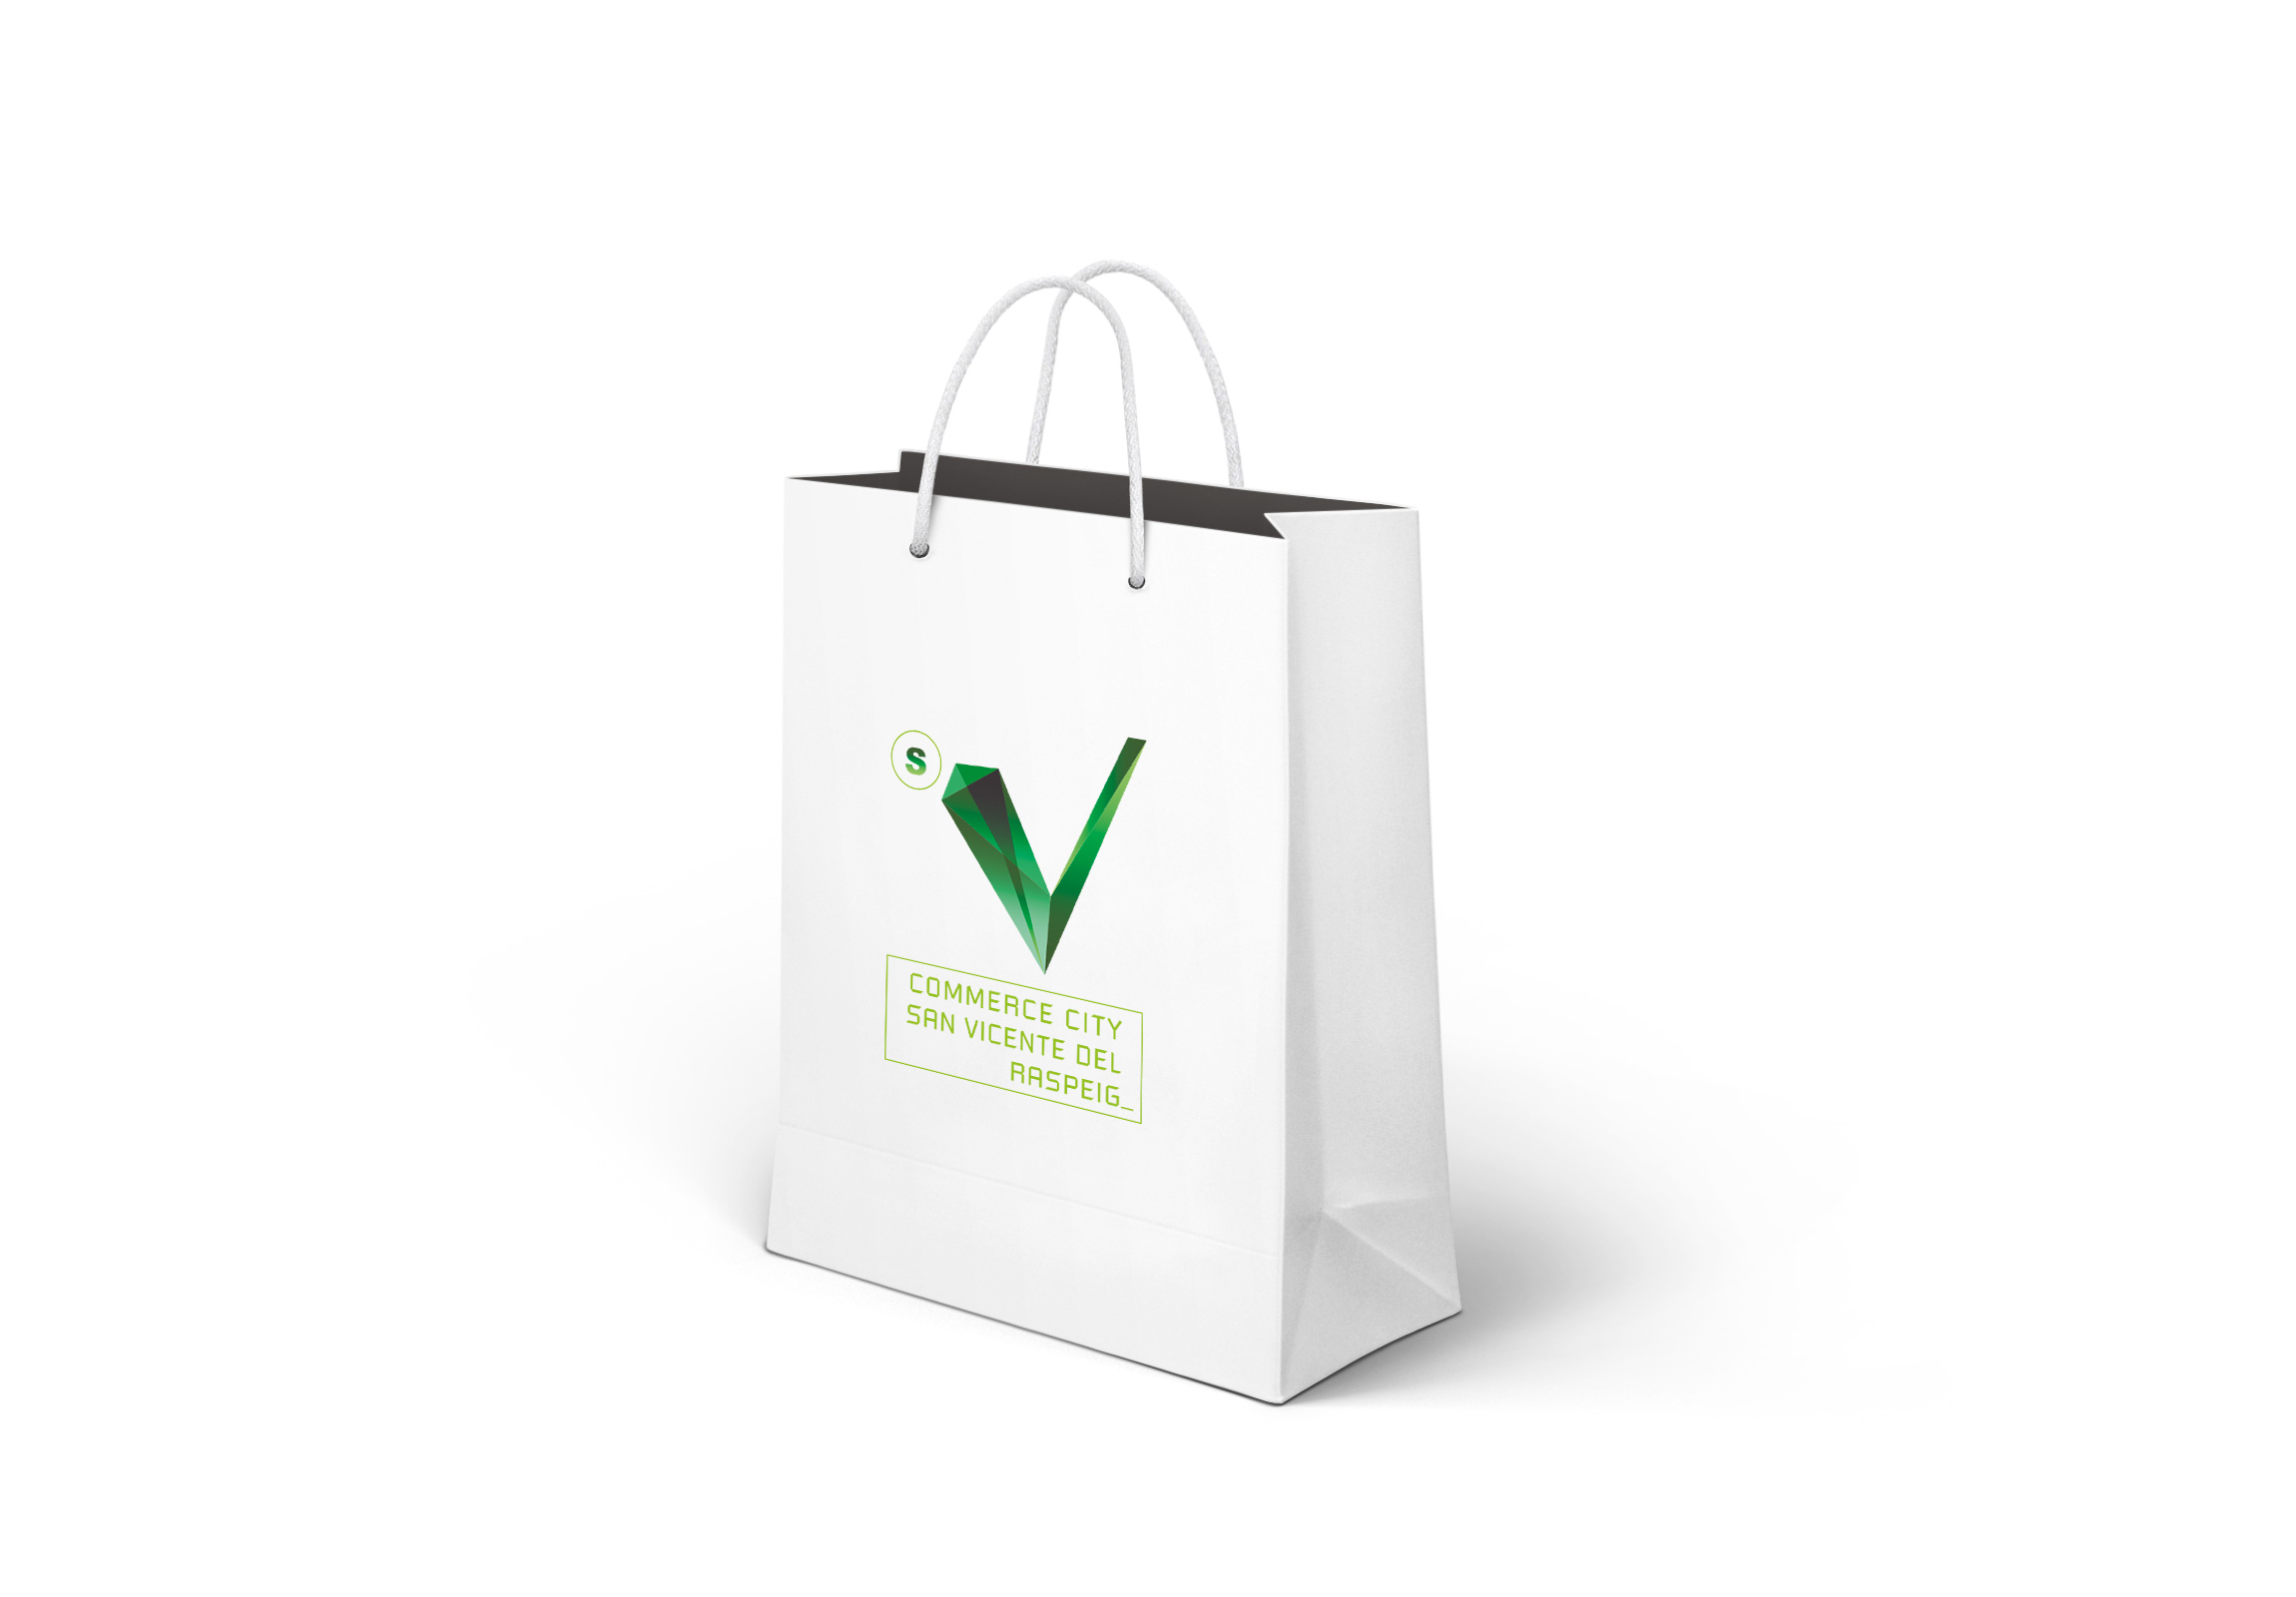 Merchandising campaña Commerce City, San Vicente del Raspeig